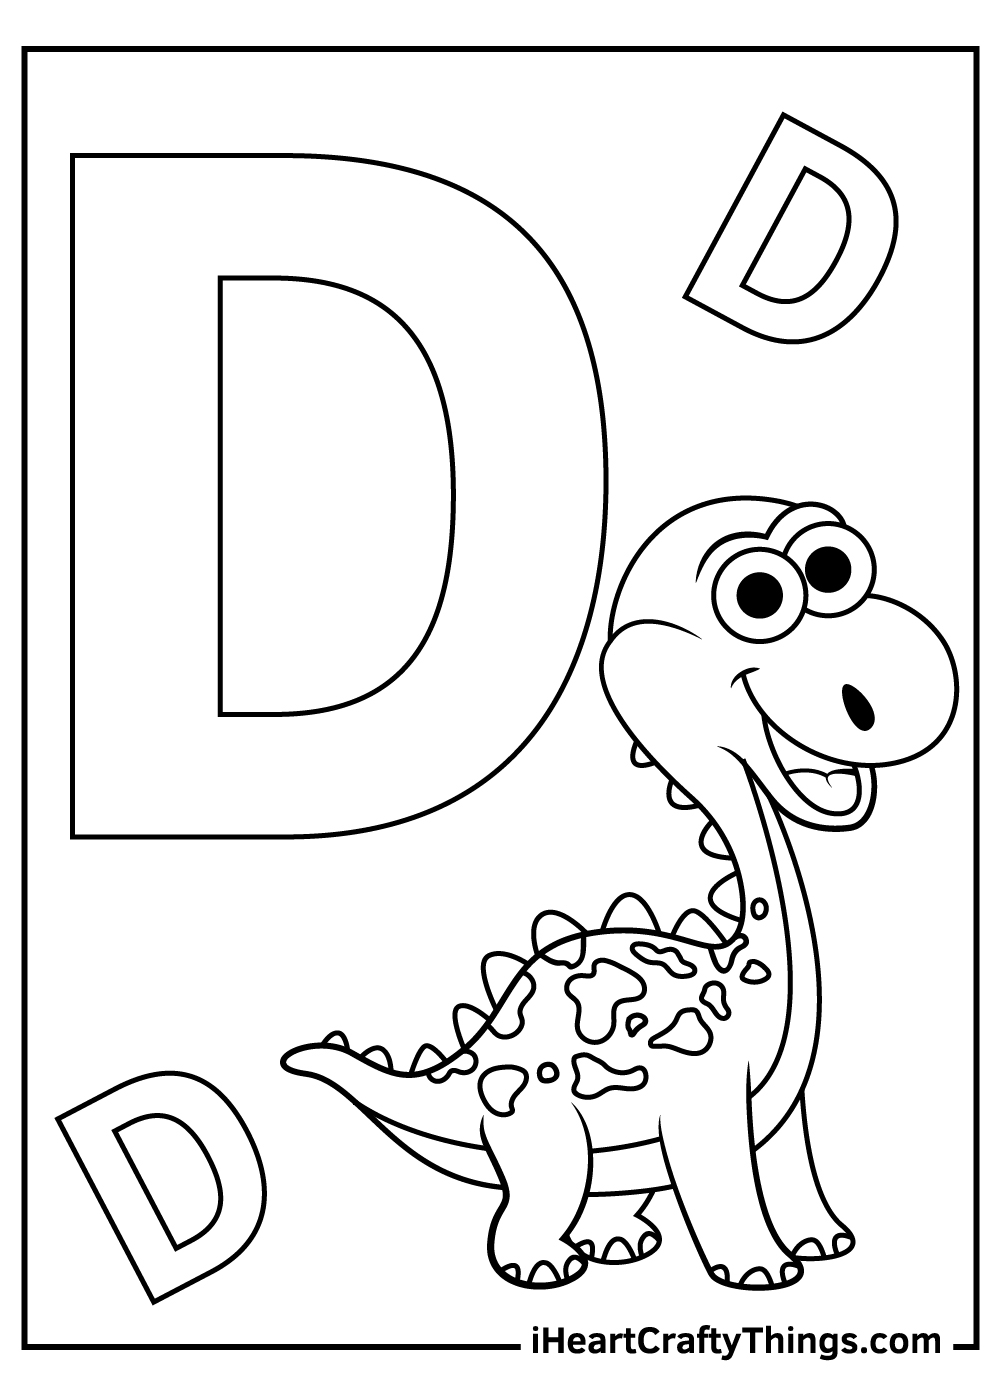 d is for dinosaur coloring for toddlers coloring pages free